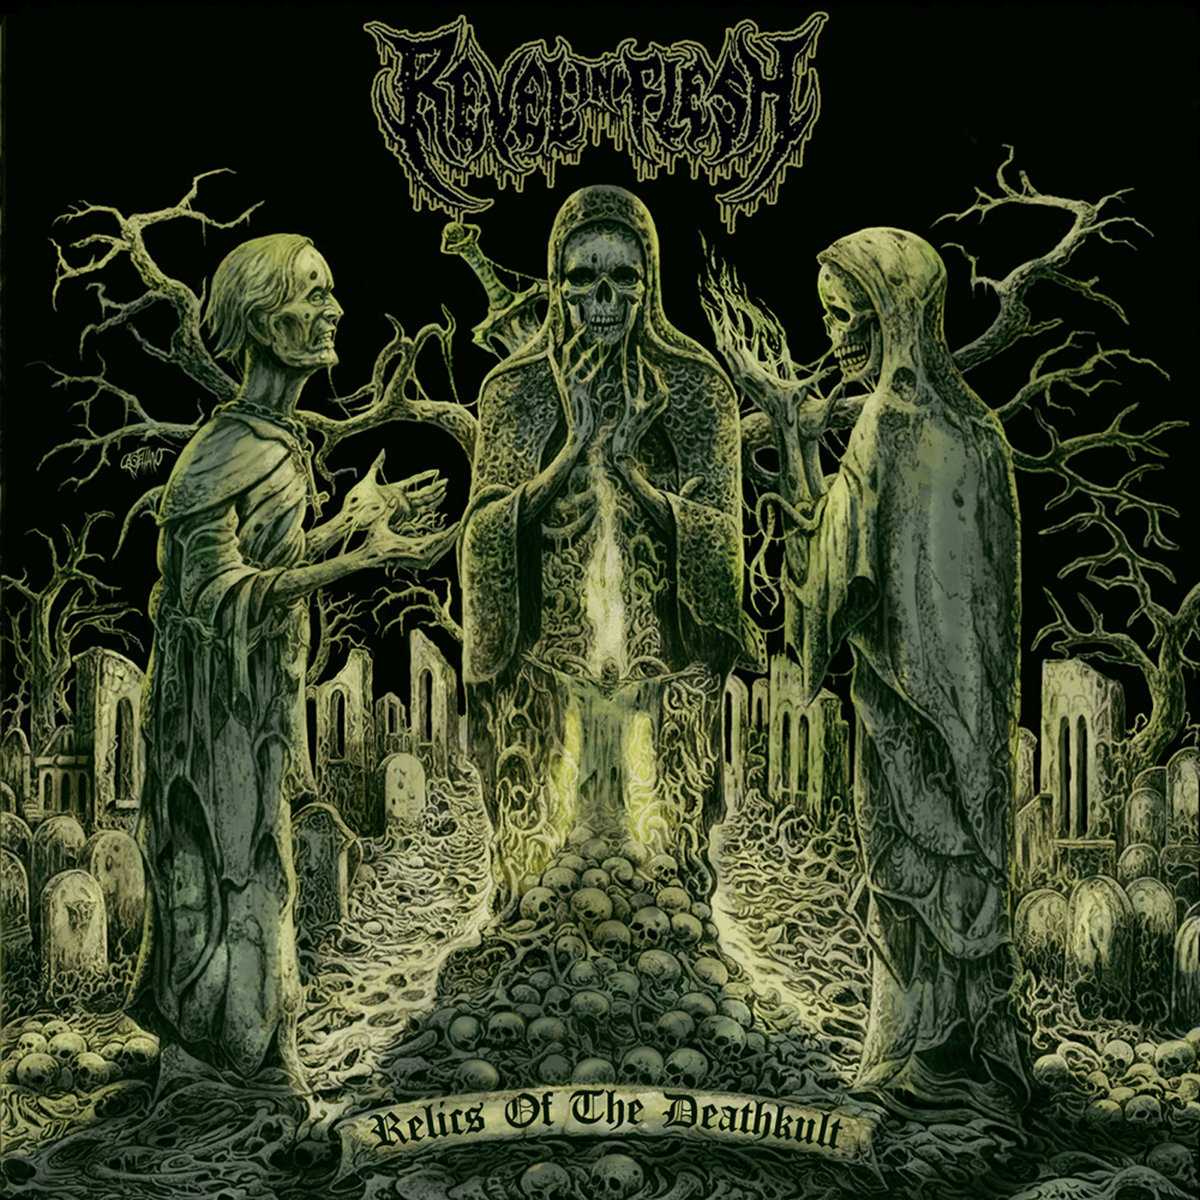 REVEL IN FLESH - Relics of the Deathkult CD